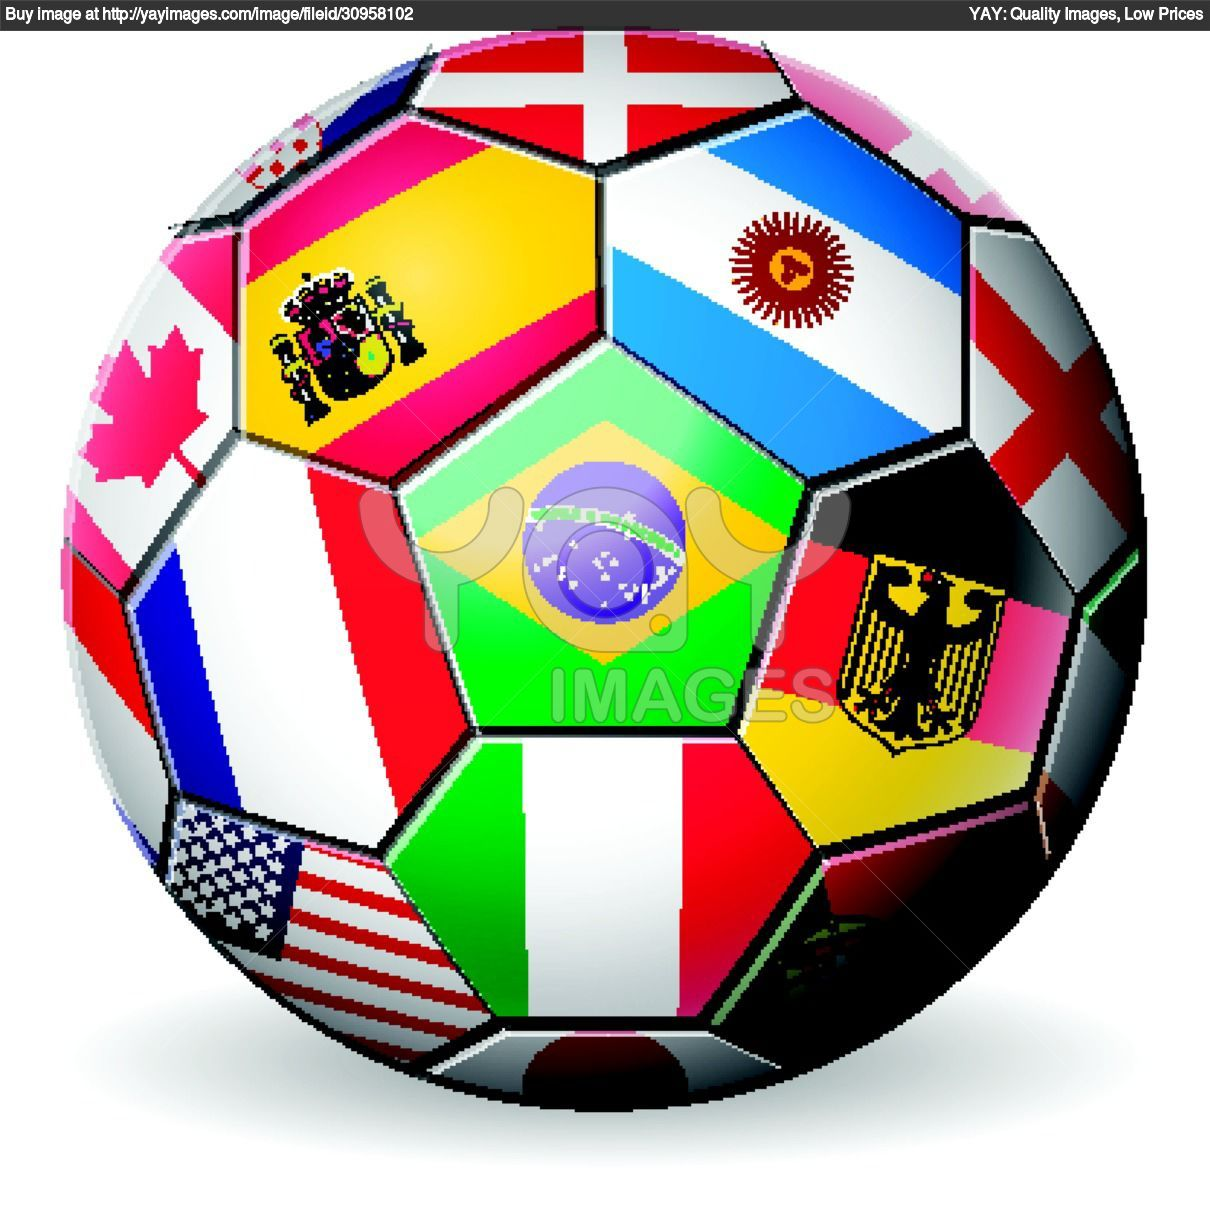 how to make a soccer ball worlde